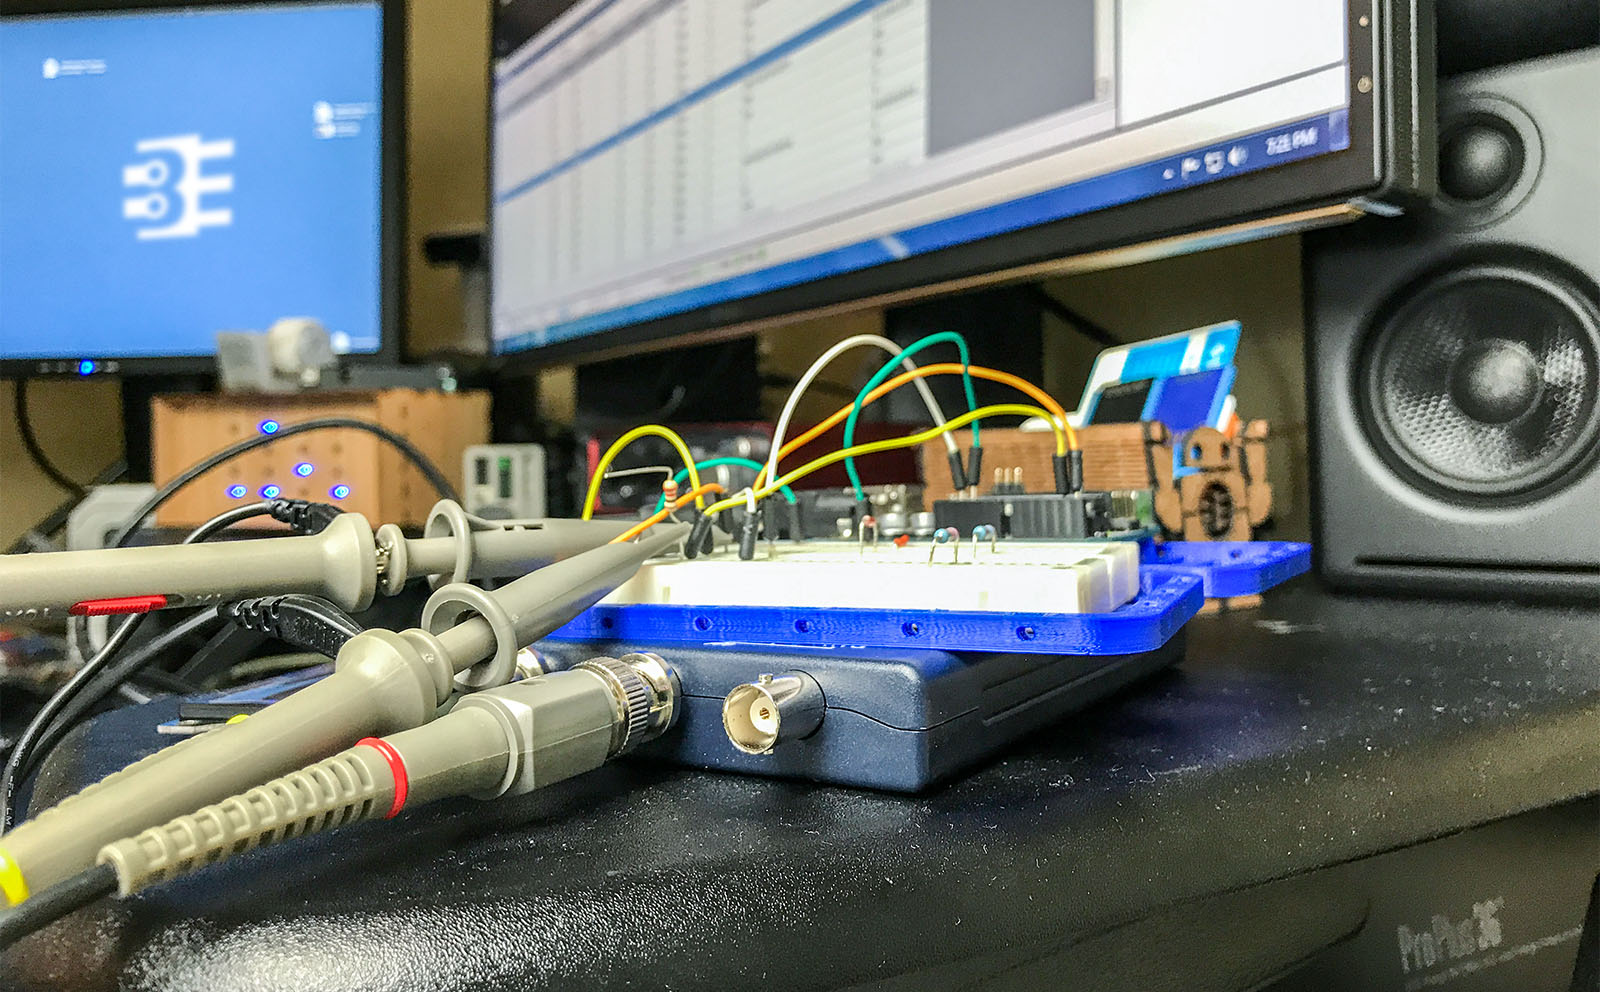 PicoScope 2204 Review and Hands-On - Bald Engineer